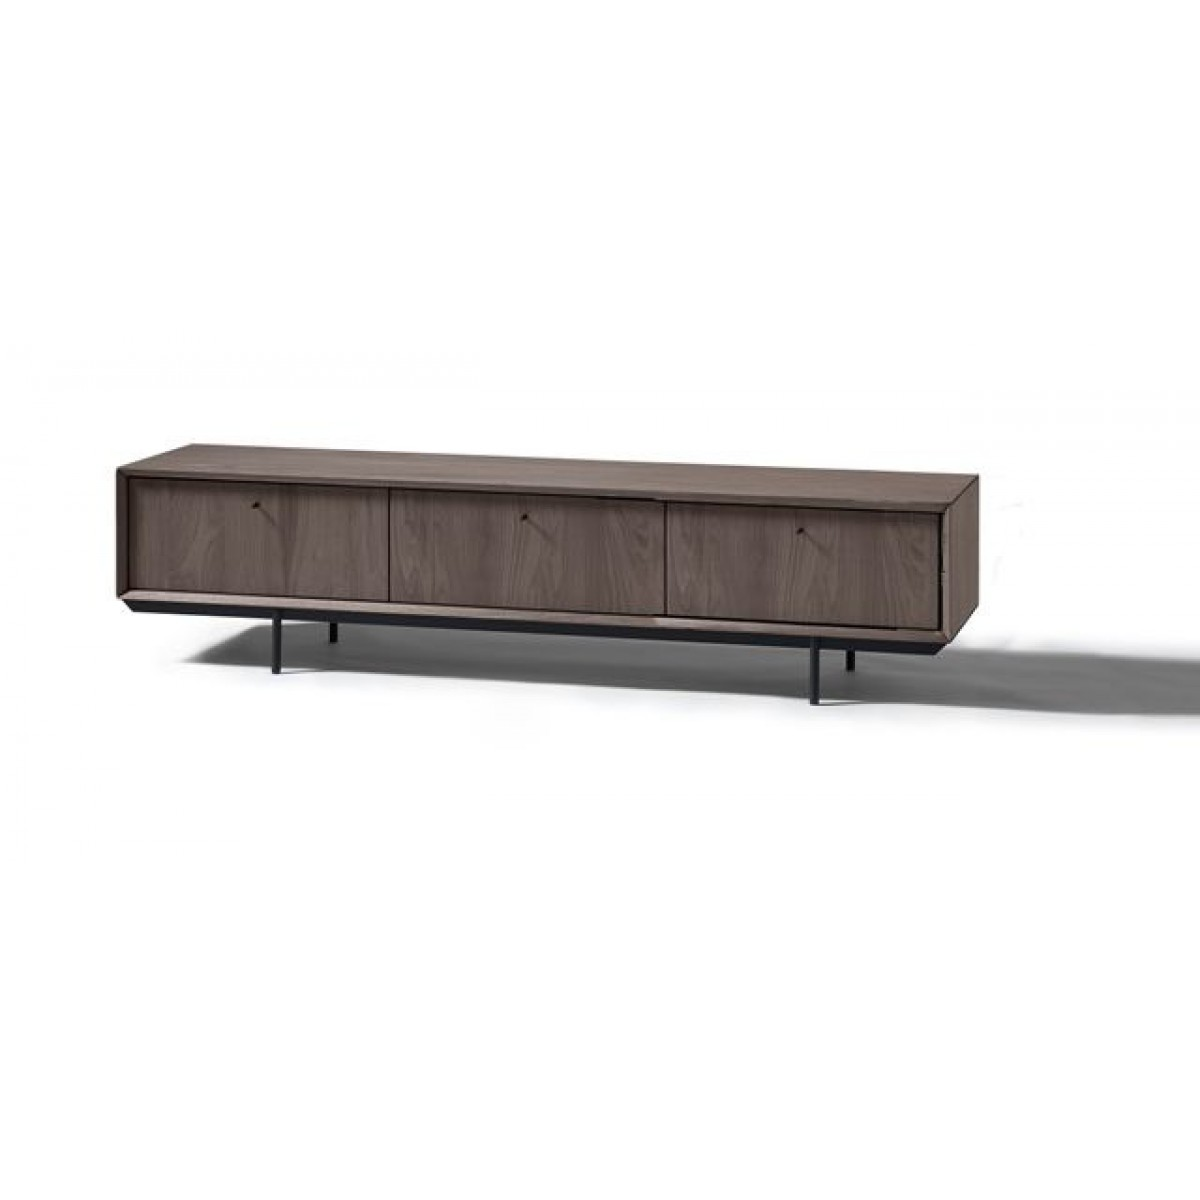 tv-dressoir-cloud-clo-10-noten-probilex-miltonhouse